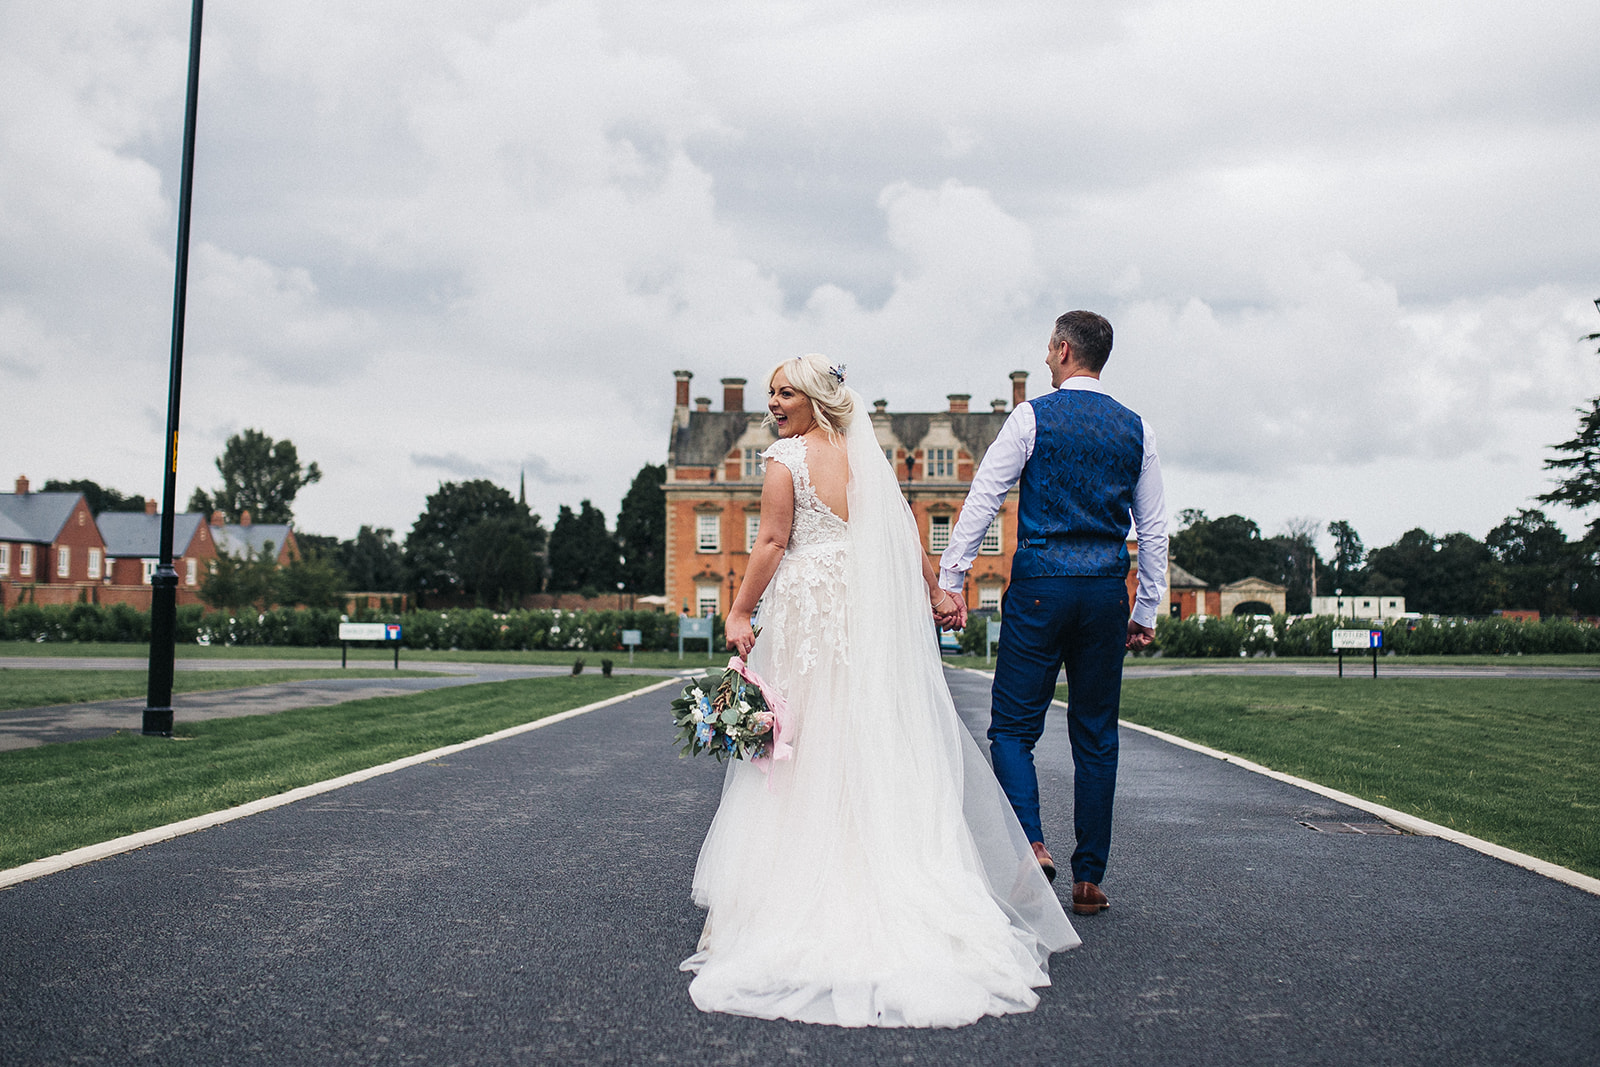 acklam hall wedding north yorkshire teesside middlesbrough. creative wedding photography middlesbrough north east north yorkshire. stop motion wedding films uk